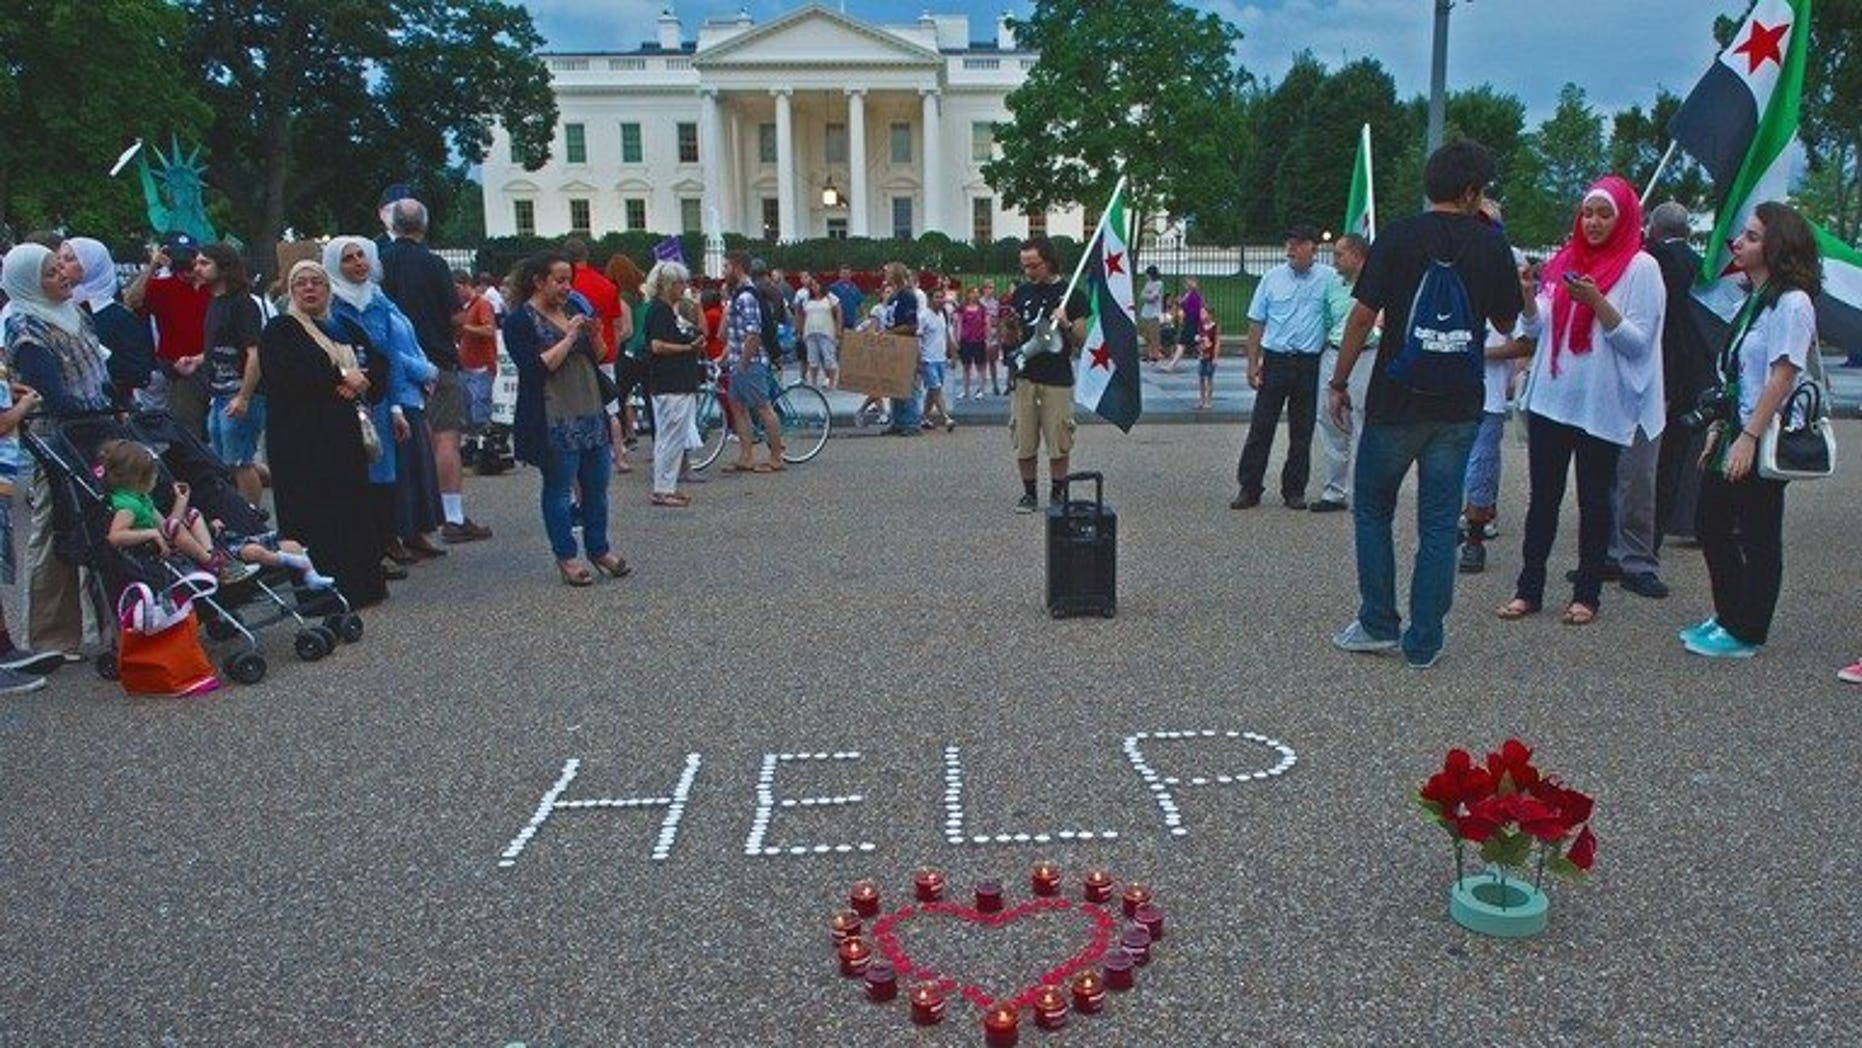 """Demonstrators calling for help from US President Obama on the Syrian revolution protest in front of the White House on August 21, 2013, in Washington, DC. A year after Washington said using chemical weapons would cross a """"red line,"""" the alleged gas attack outside Damascus has exposed how few options the West has to try to end Syria's violence."""